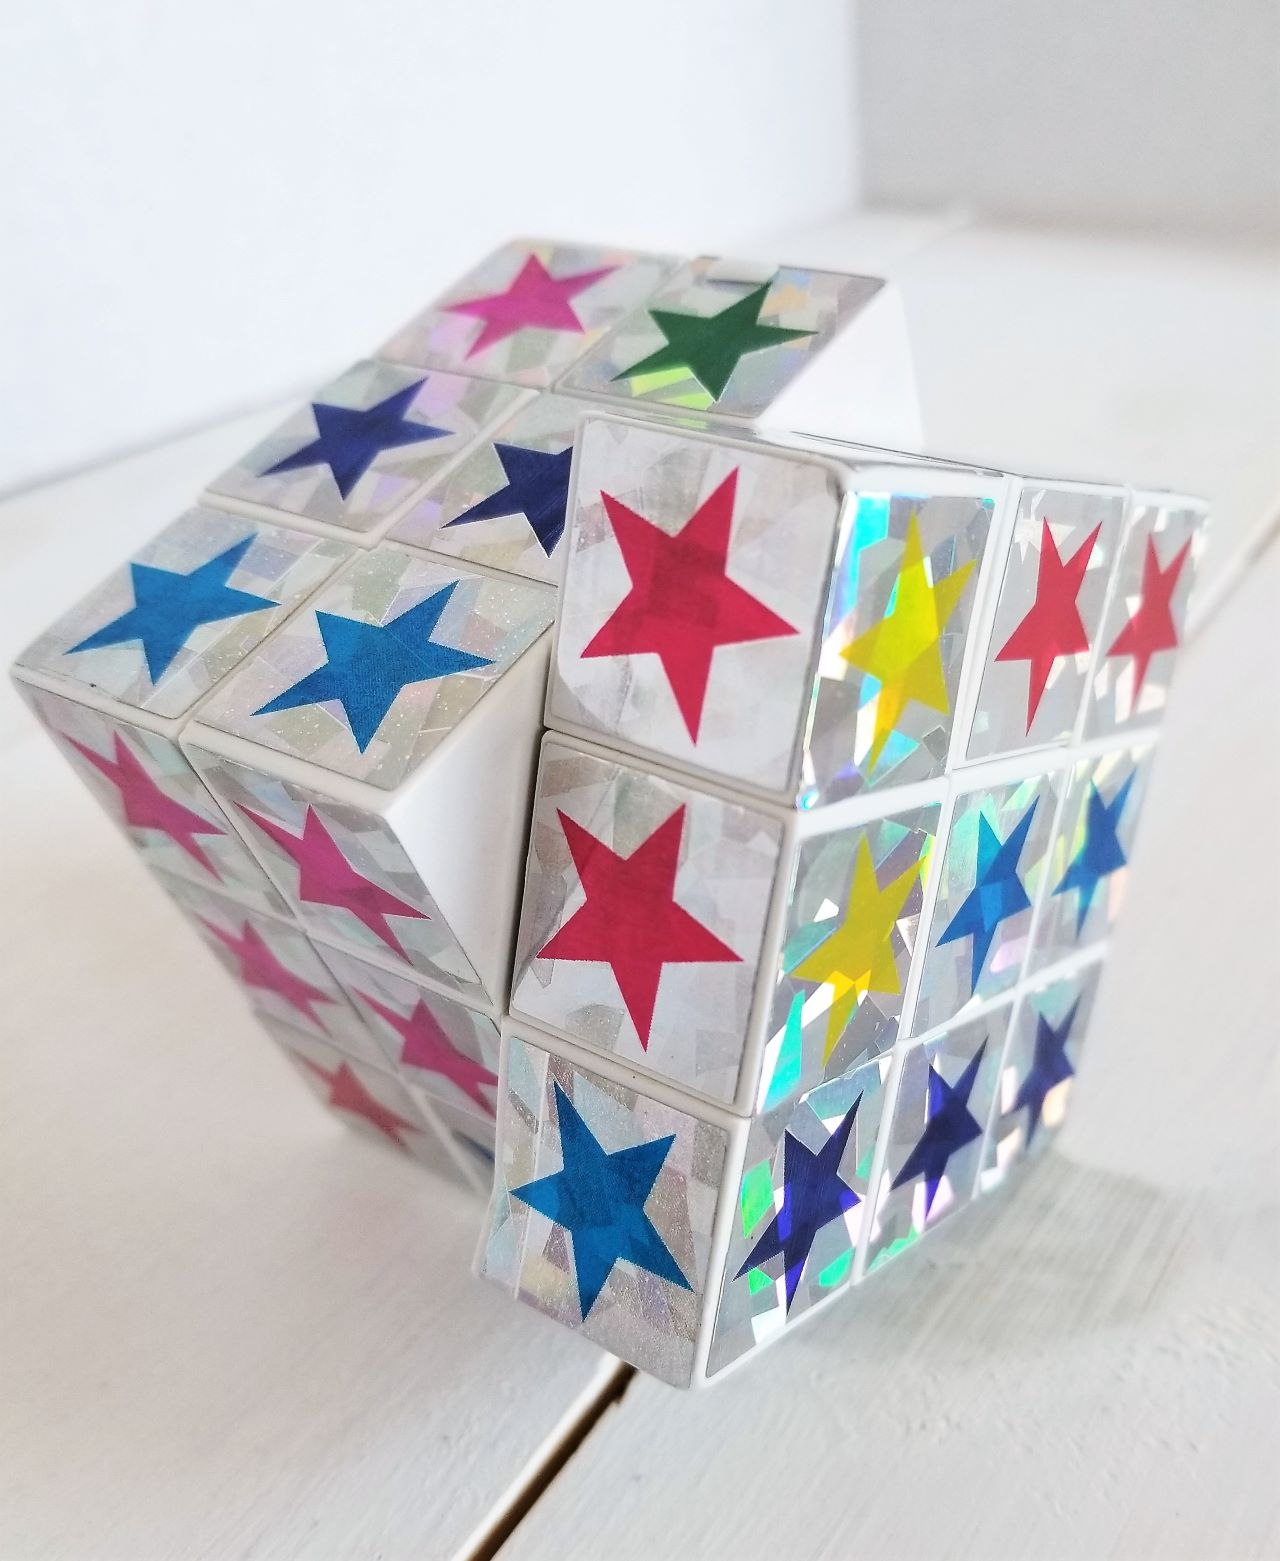 Dollar Store Fidgets and Sensory Toy Ideas: Star Cube